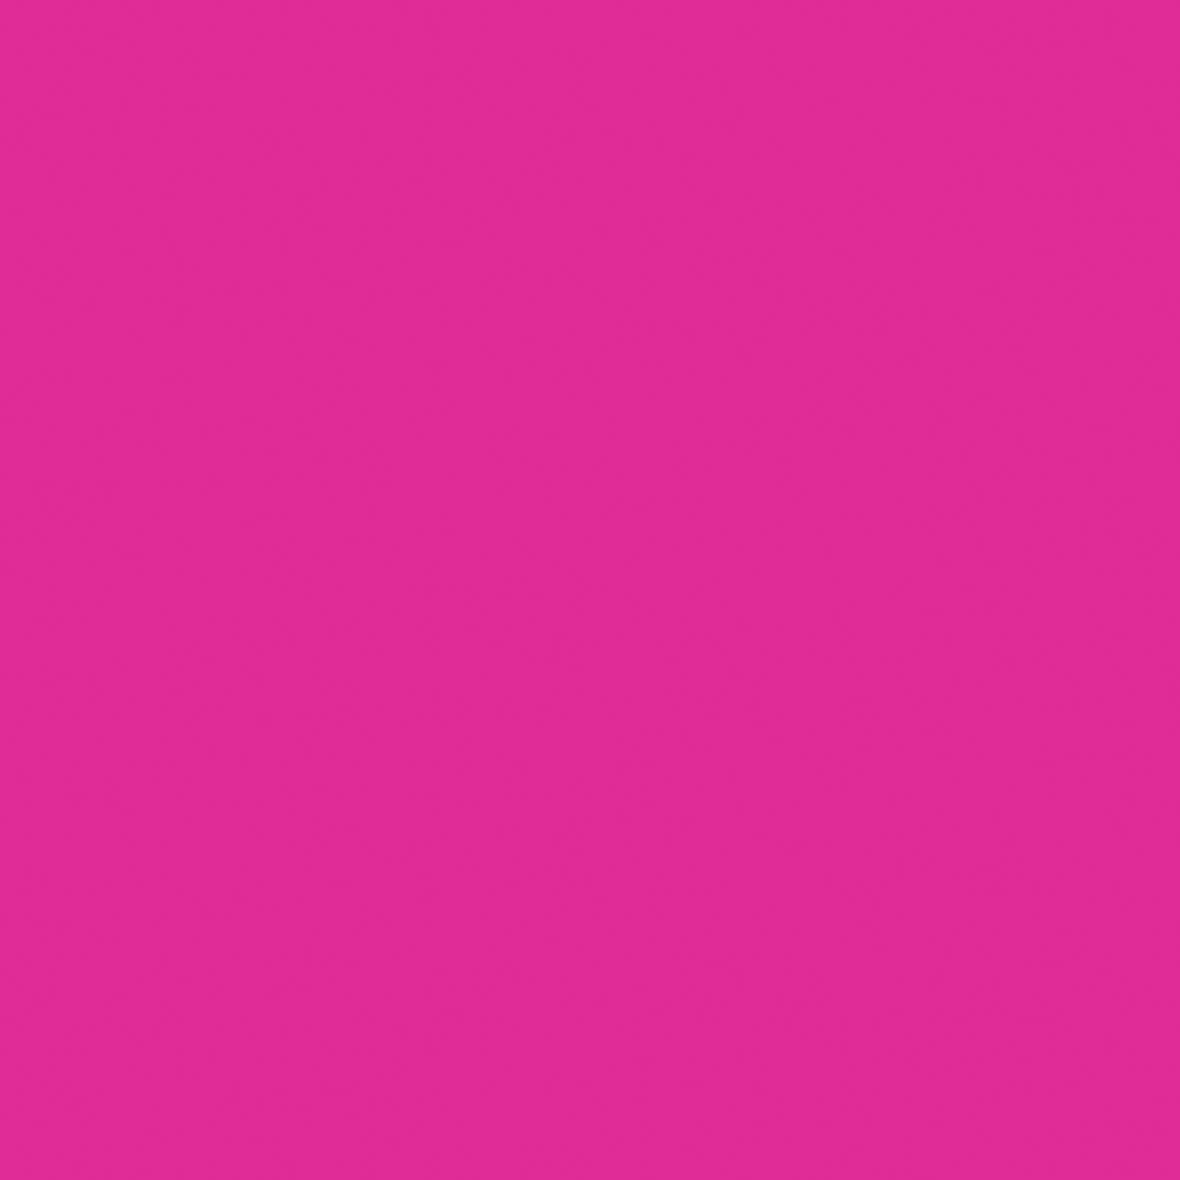 farbmuster pink stiftung contact